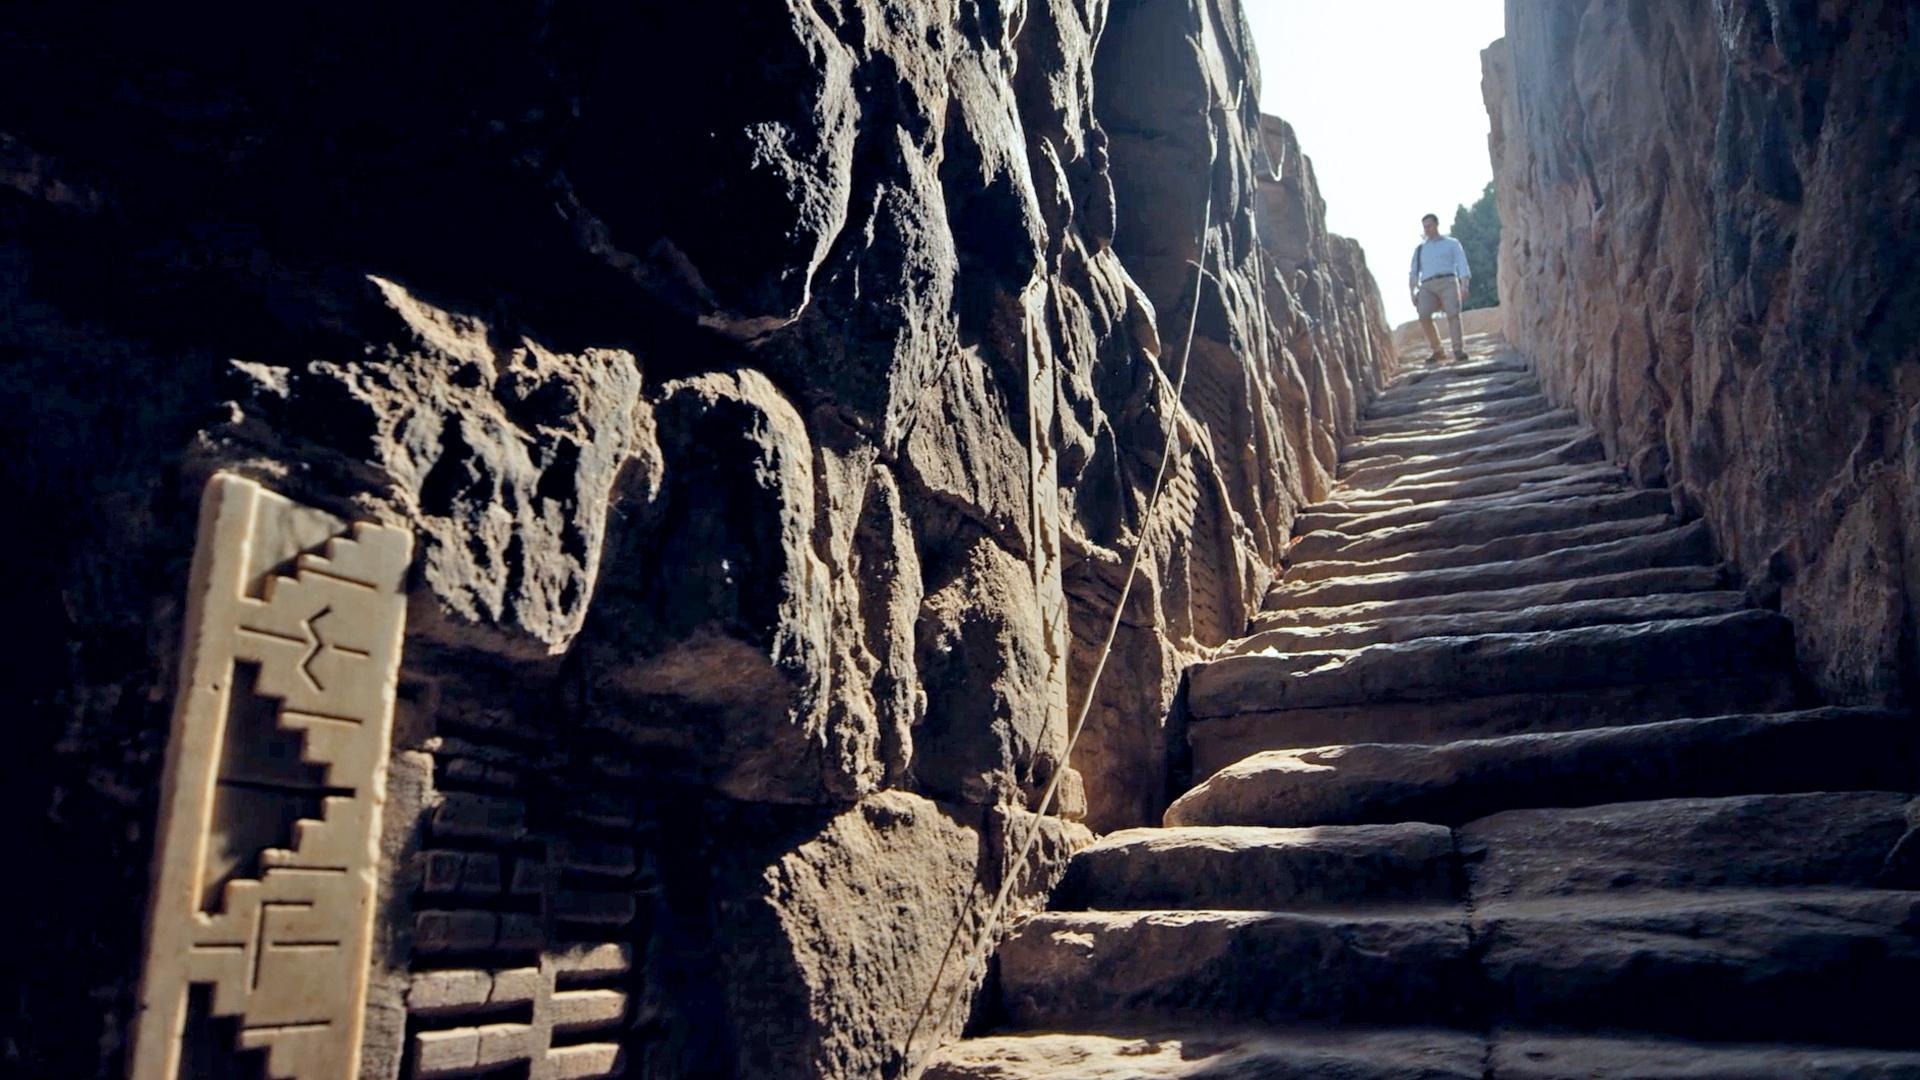 Down an ancient staircase in Egypt is a Nilometer, the oldest river gauge in the world. It was used 2,500 years ago by temple priests to monitor the height of the river.